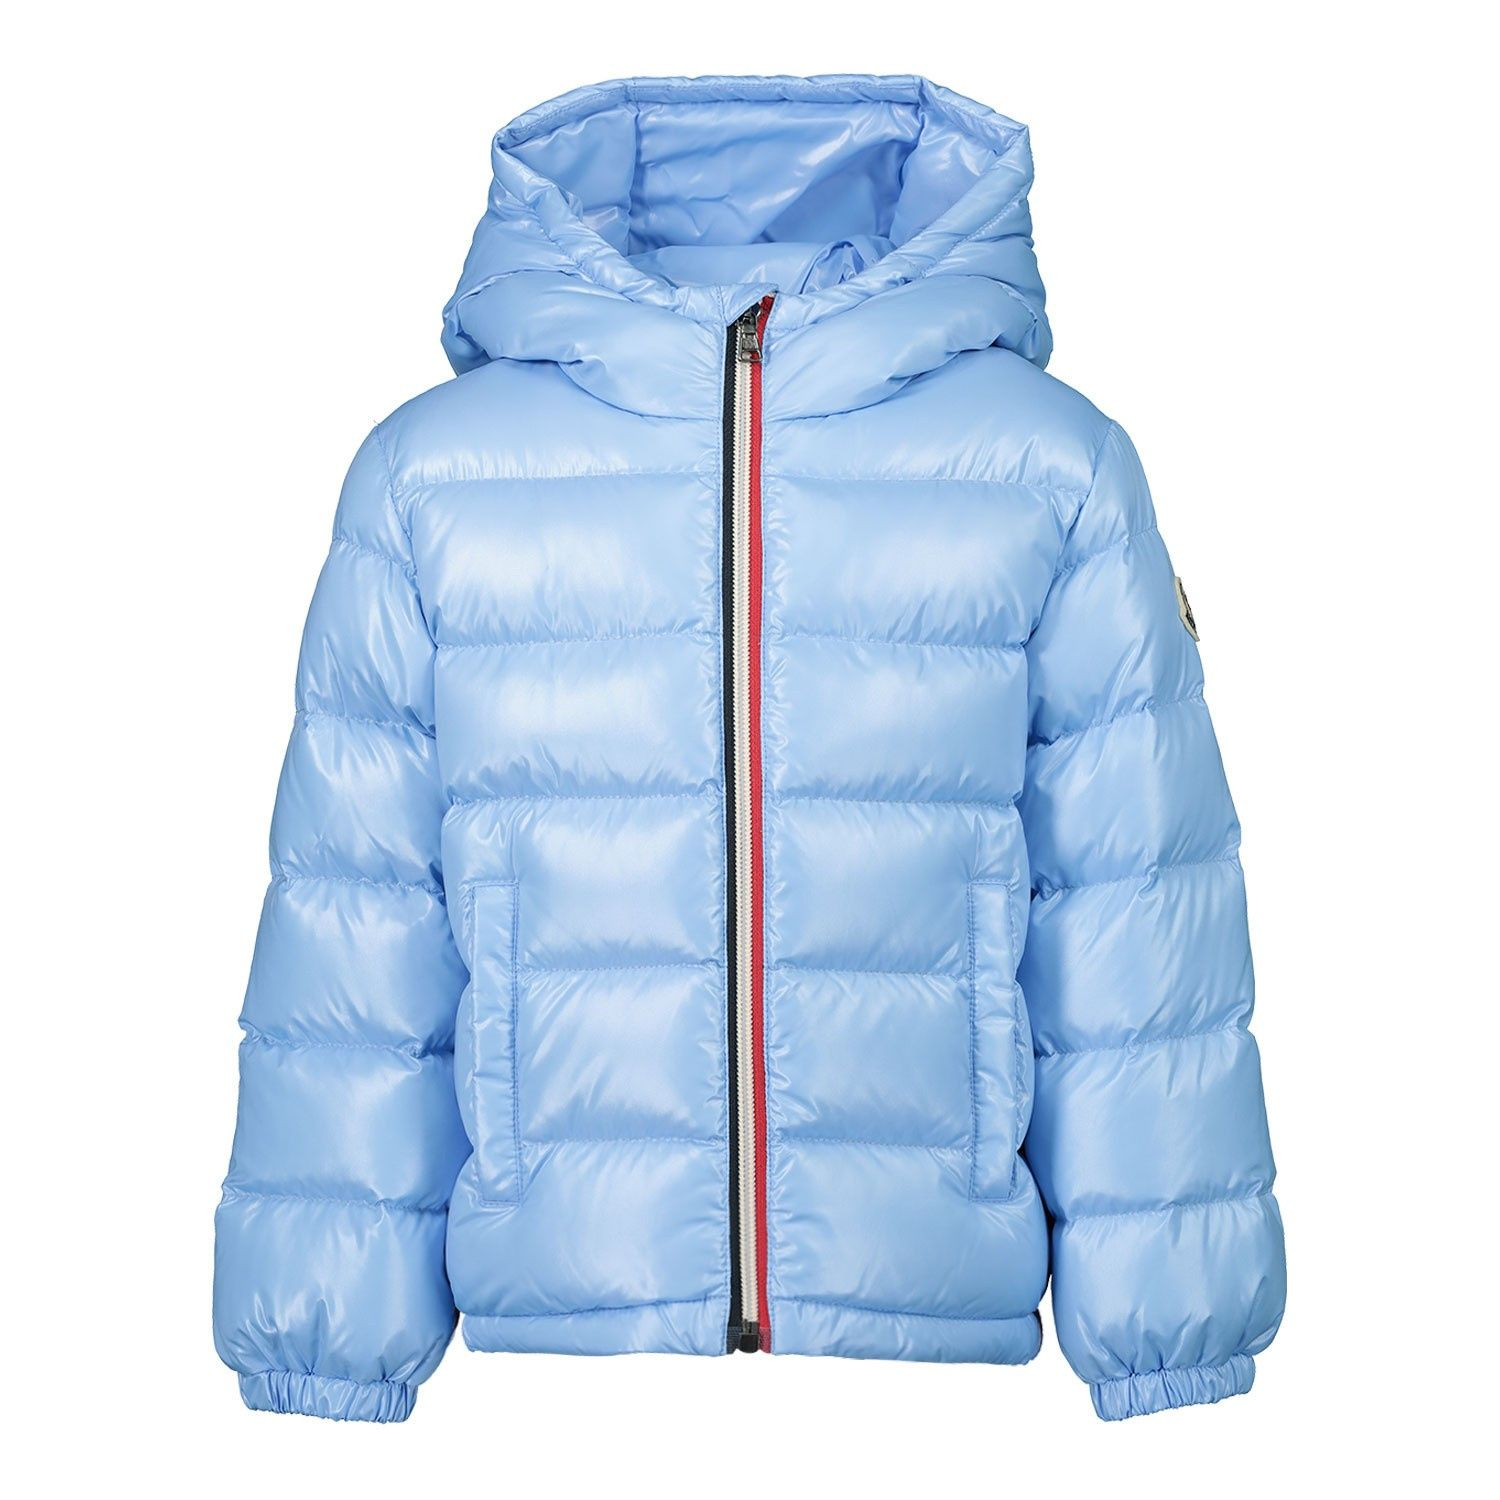 Picture of Moncler 1A53520 baby coat light blue